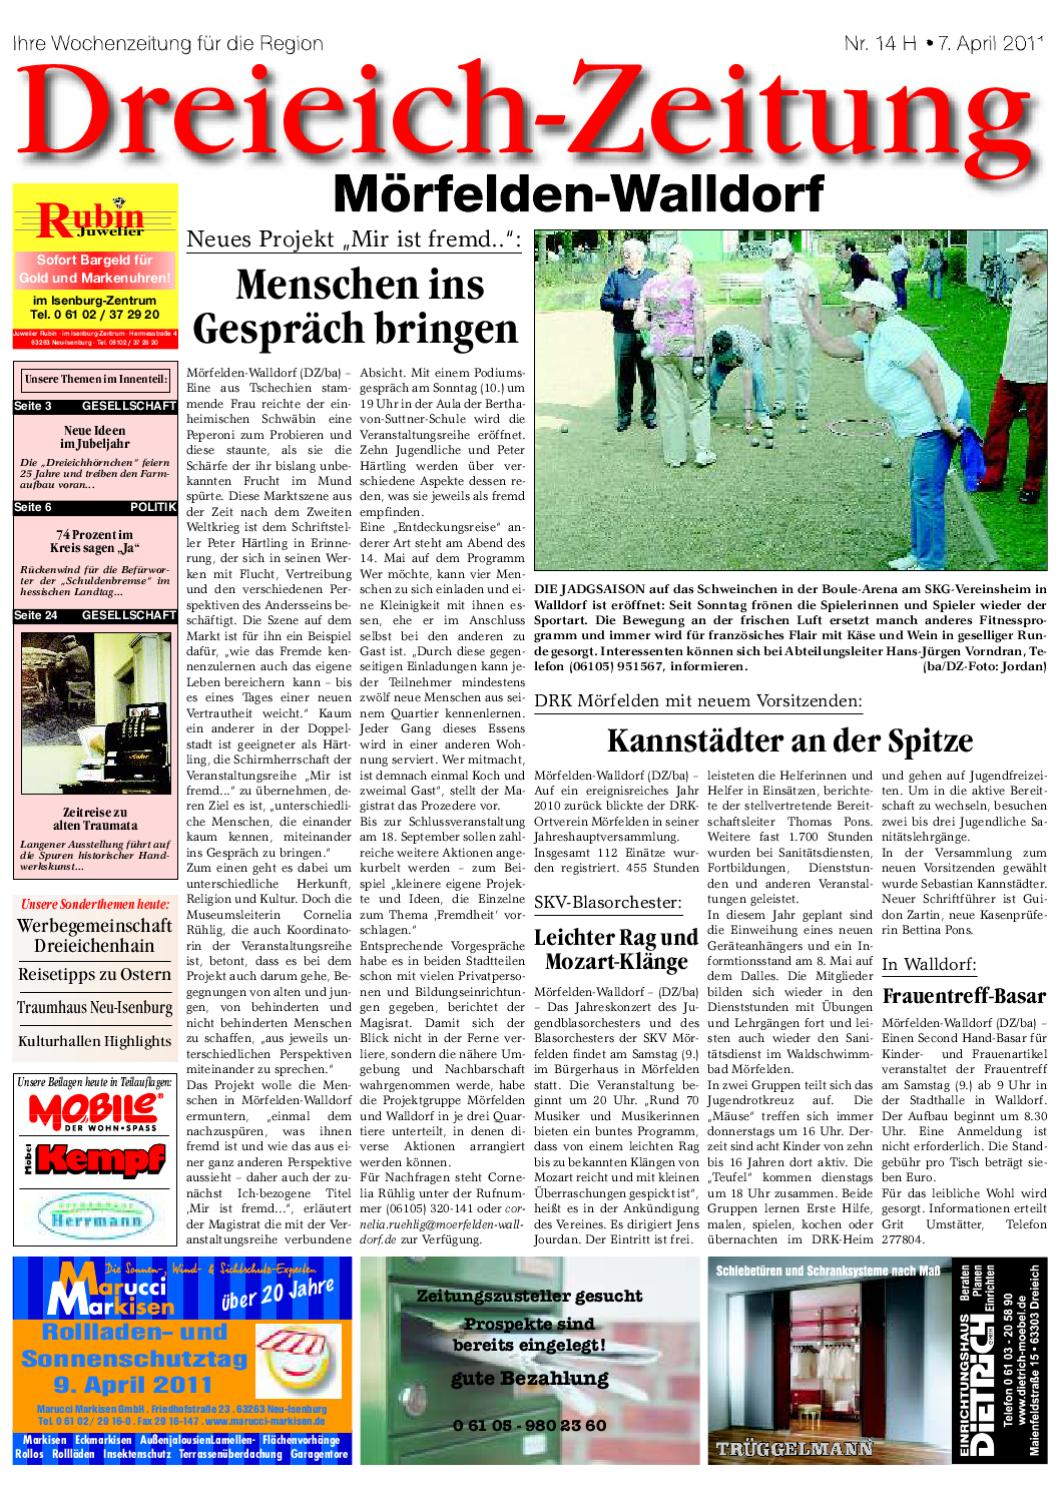 DZH 07-04-2011 by Dreieich-Zeitung/Offenbach-Journal - issuu